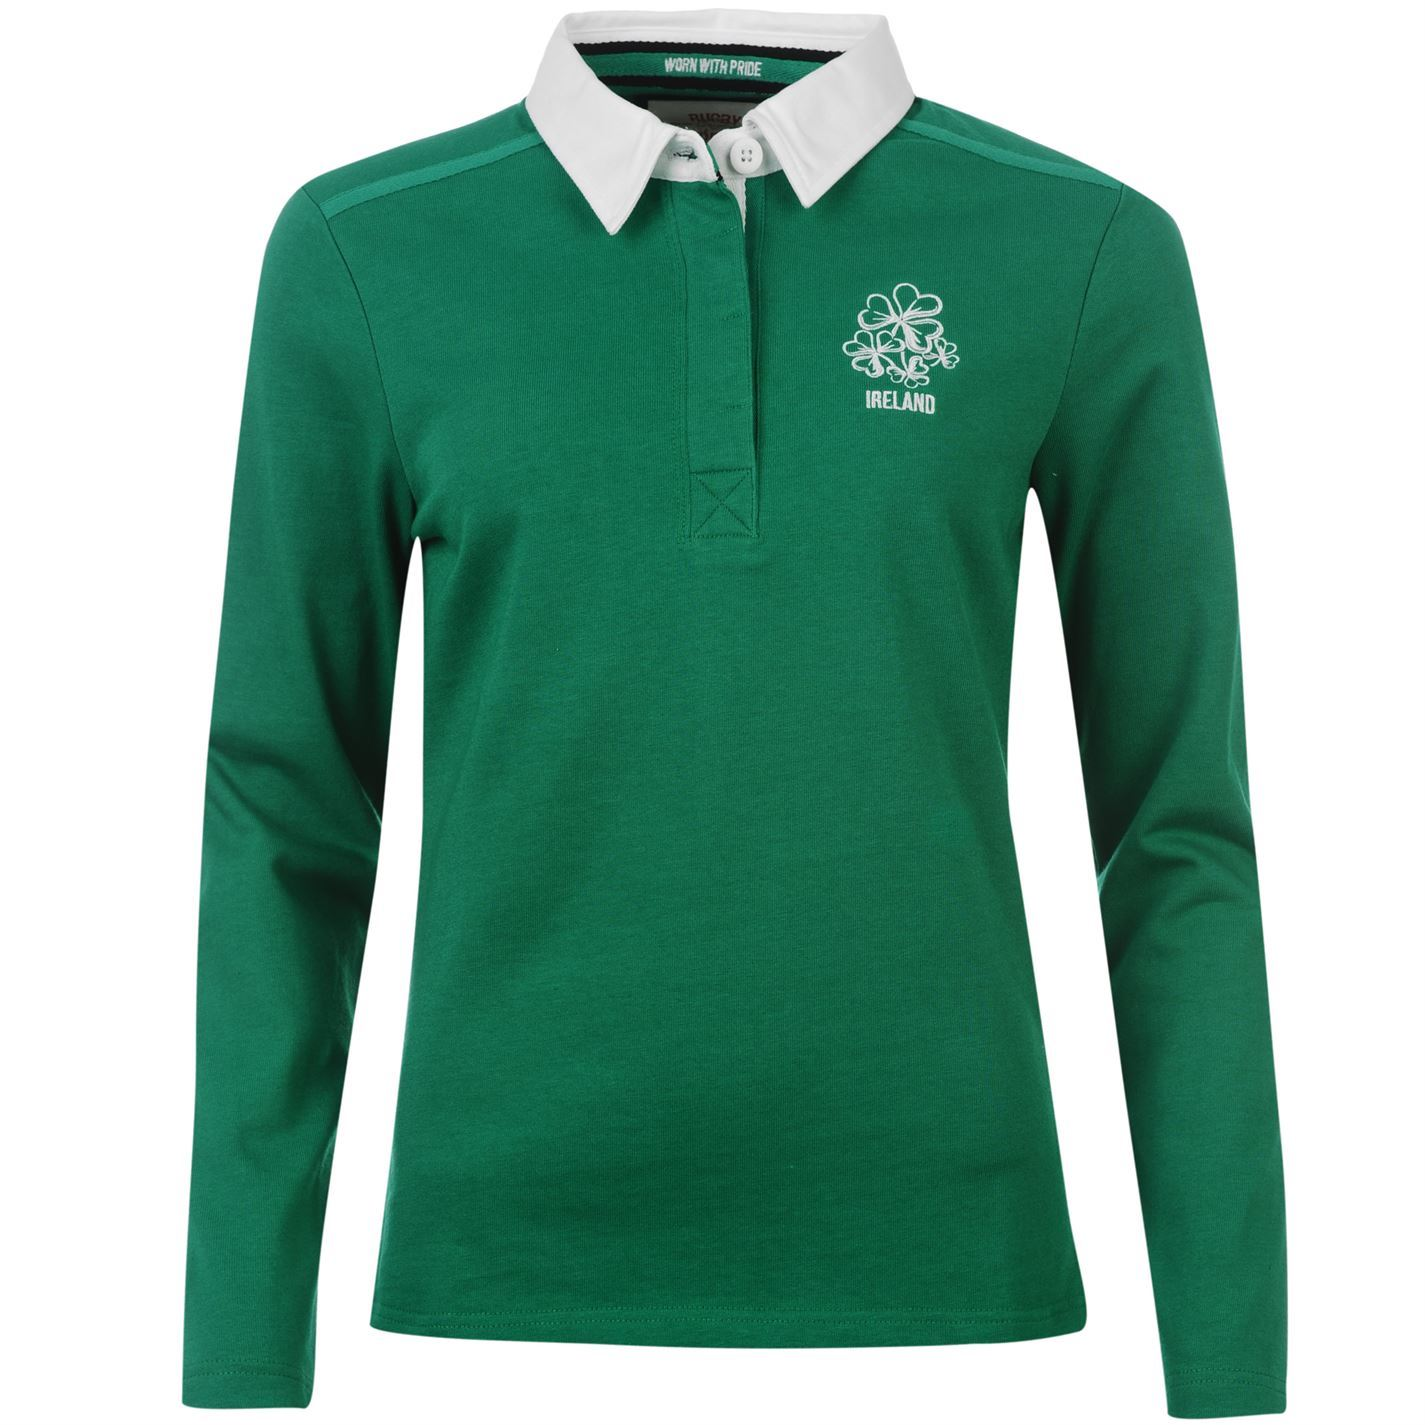 Team Womens Ladies Ireland Long Sleeve Rugby Shirt T Shirt